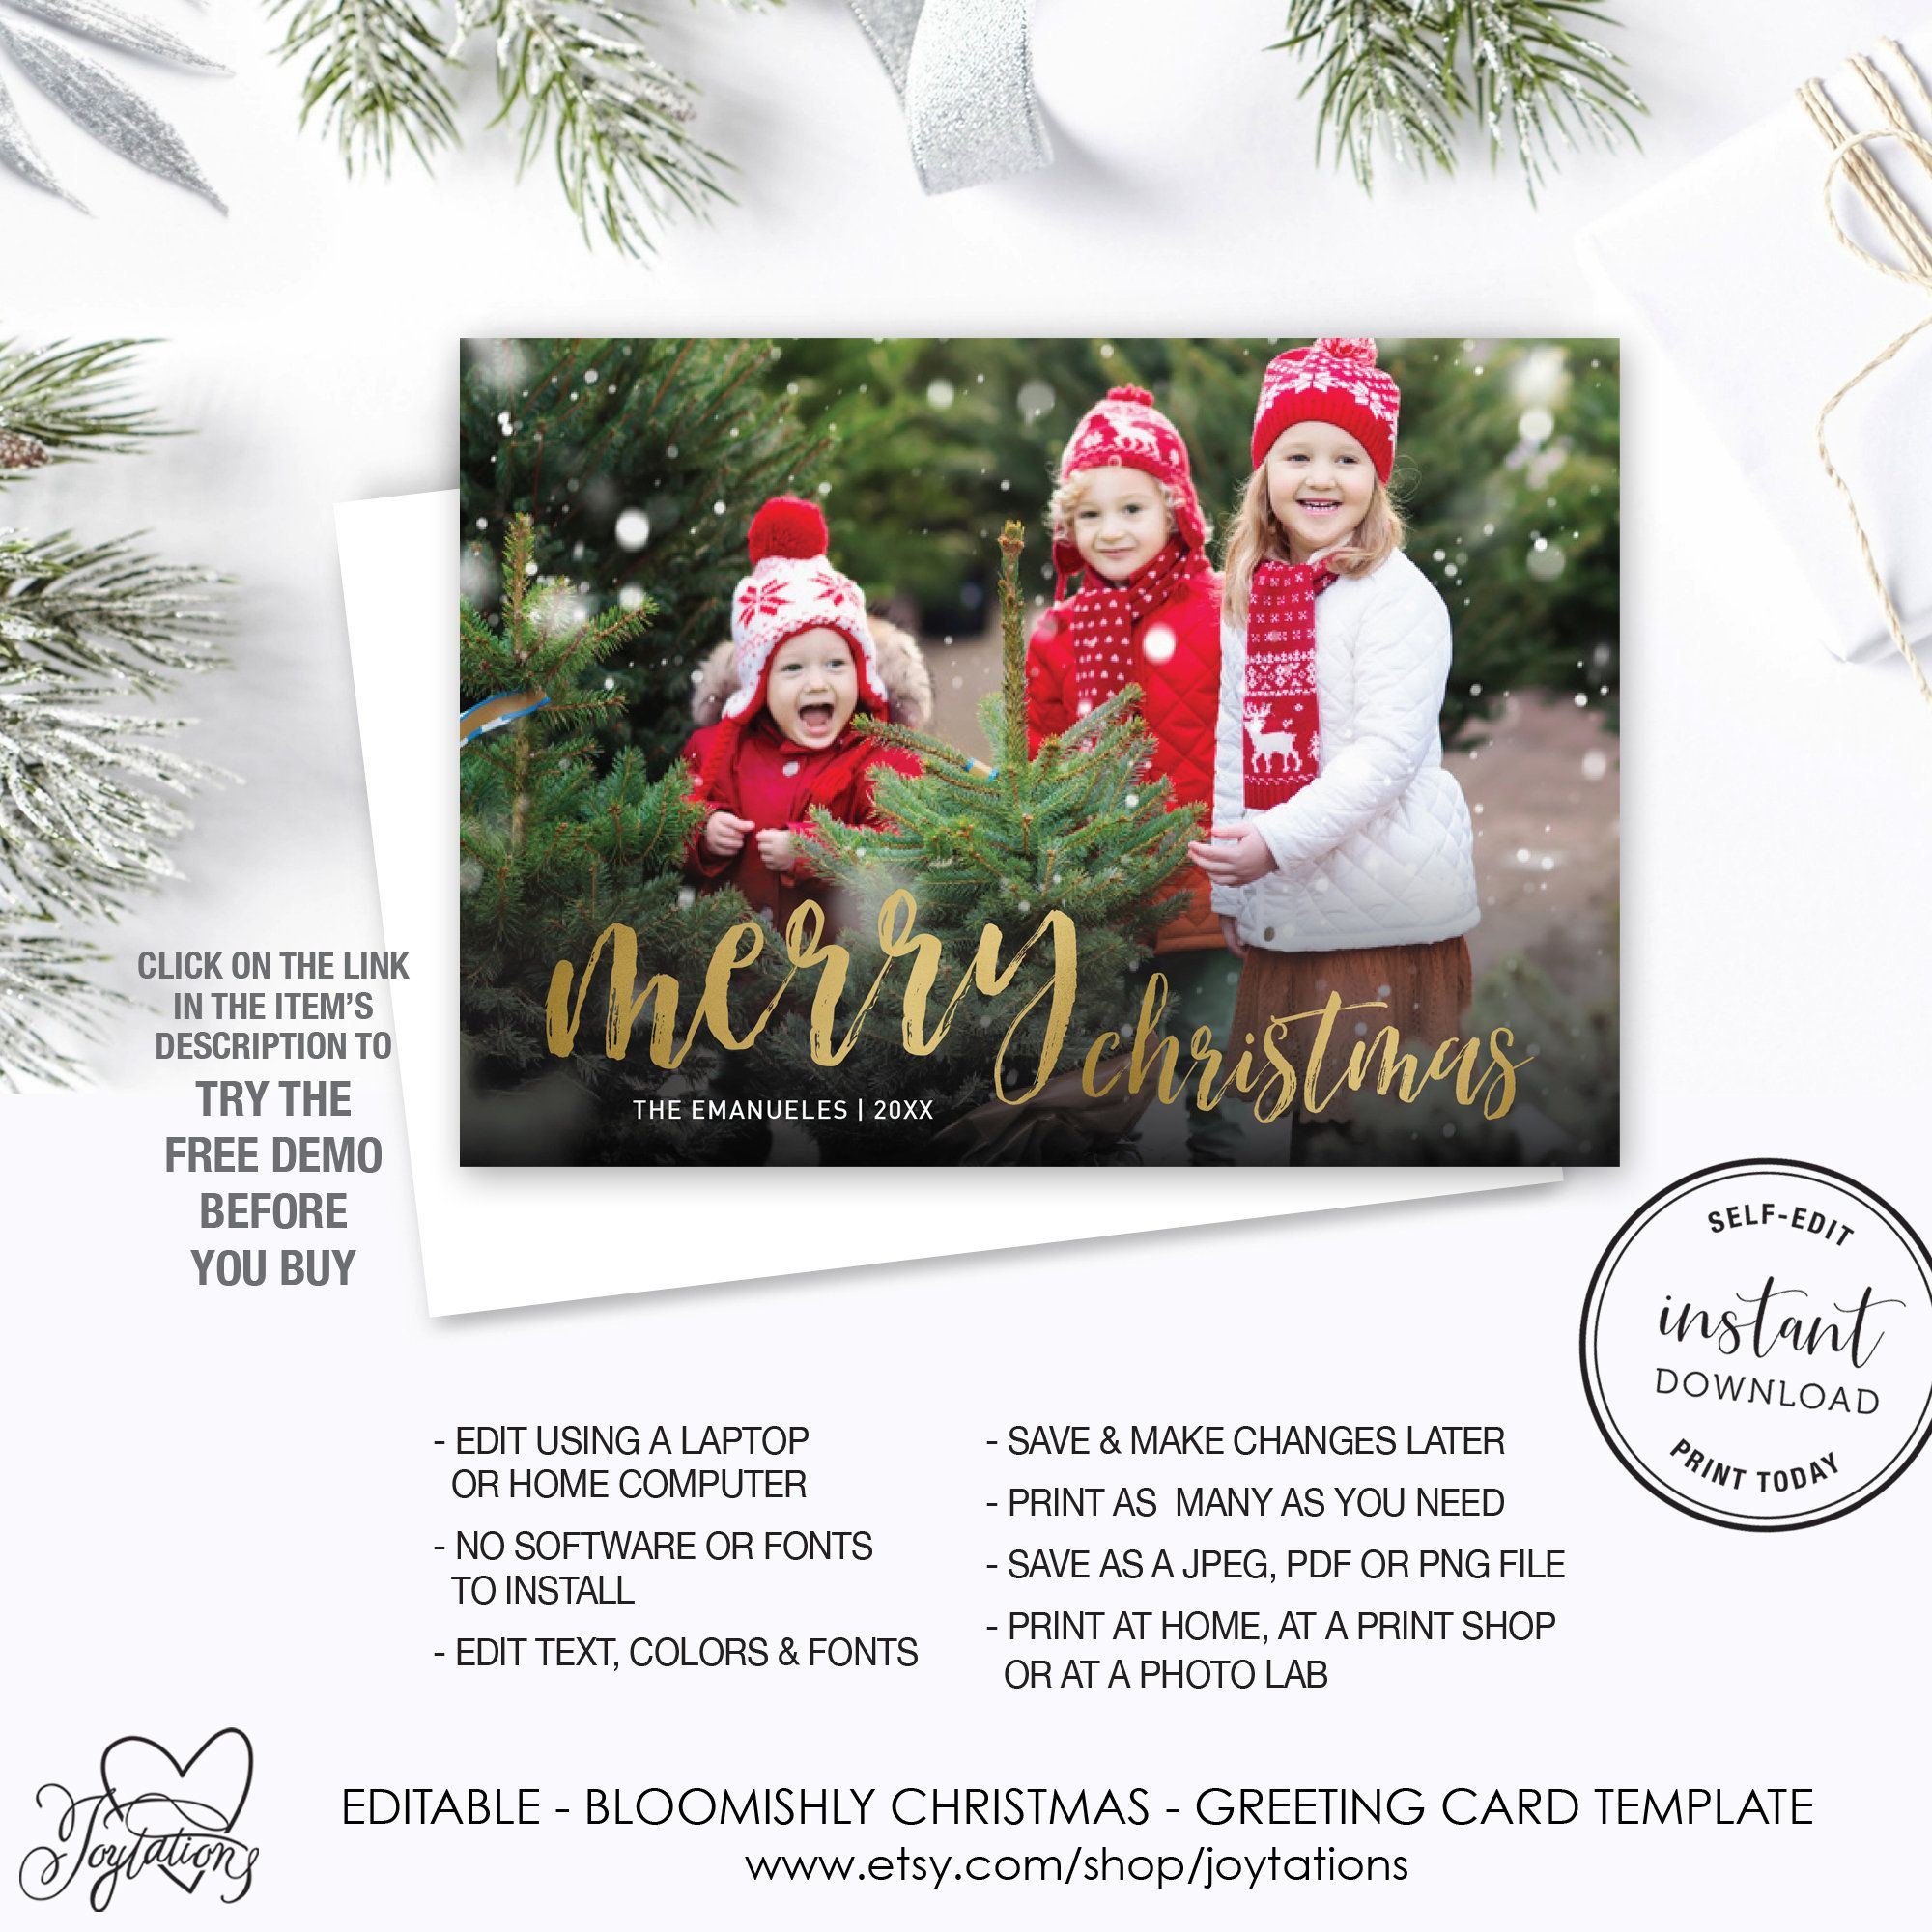 Merry Christmas Holiday Greeting Card With Photos Template Etsy Print Christmas Card Christmas Holiday Greetings Holiday Greeting Cards